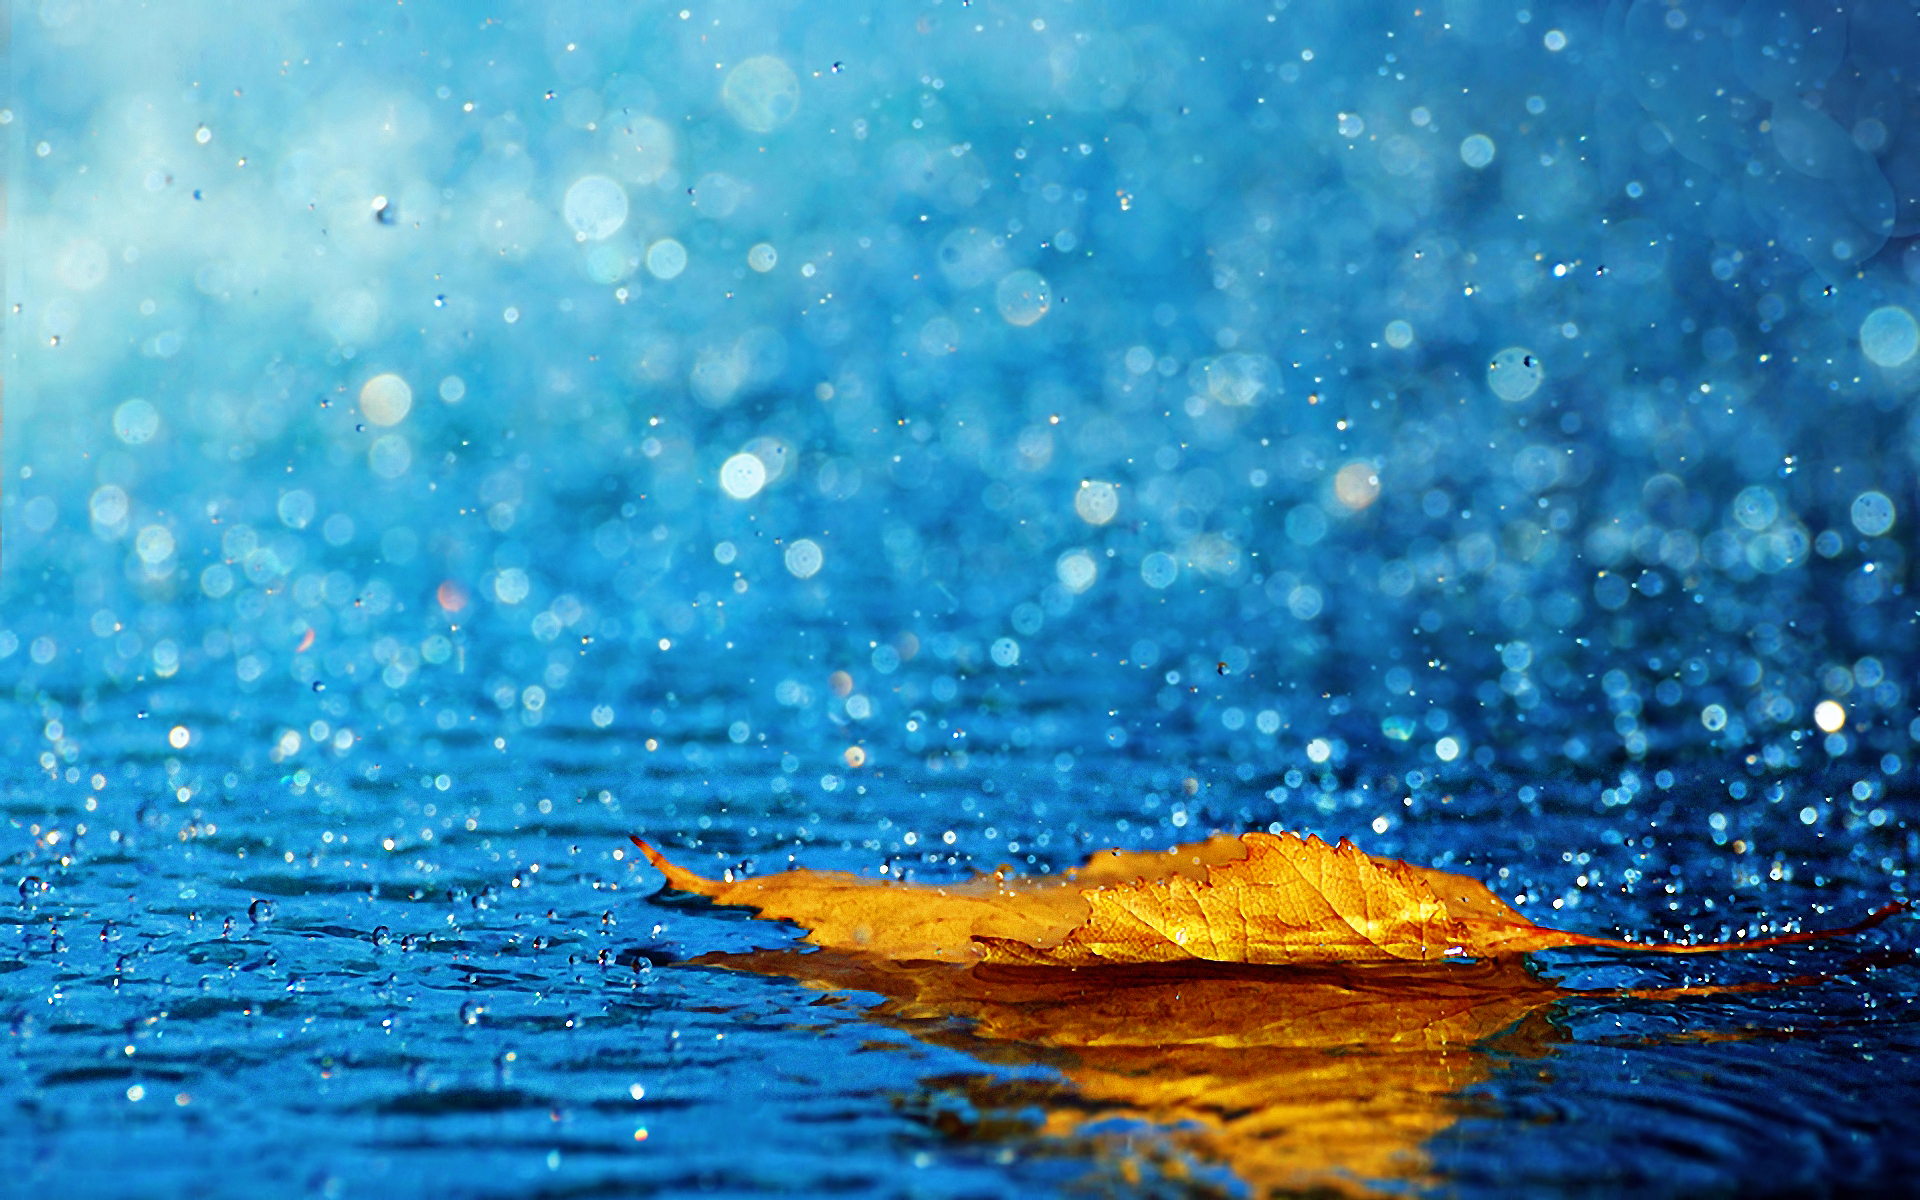 Rain Ariyaamo HD Wallpaper Others Wallpapers 1920x1200